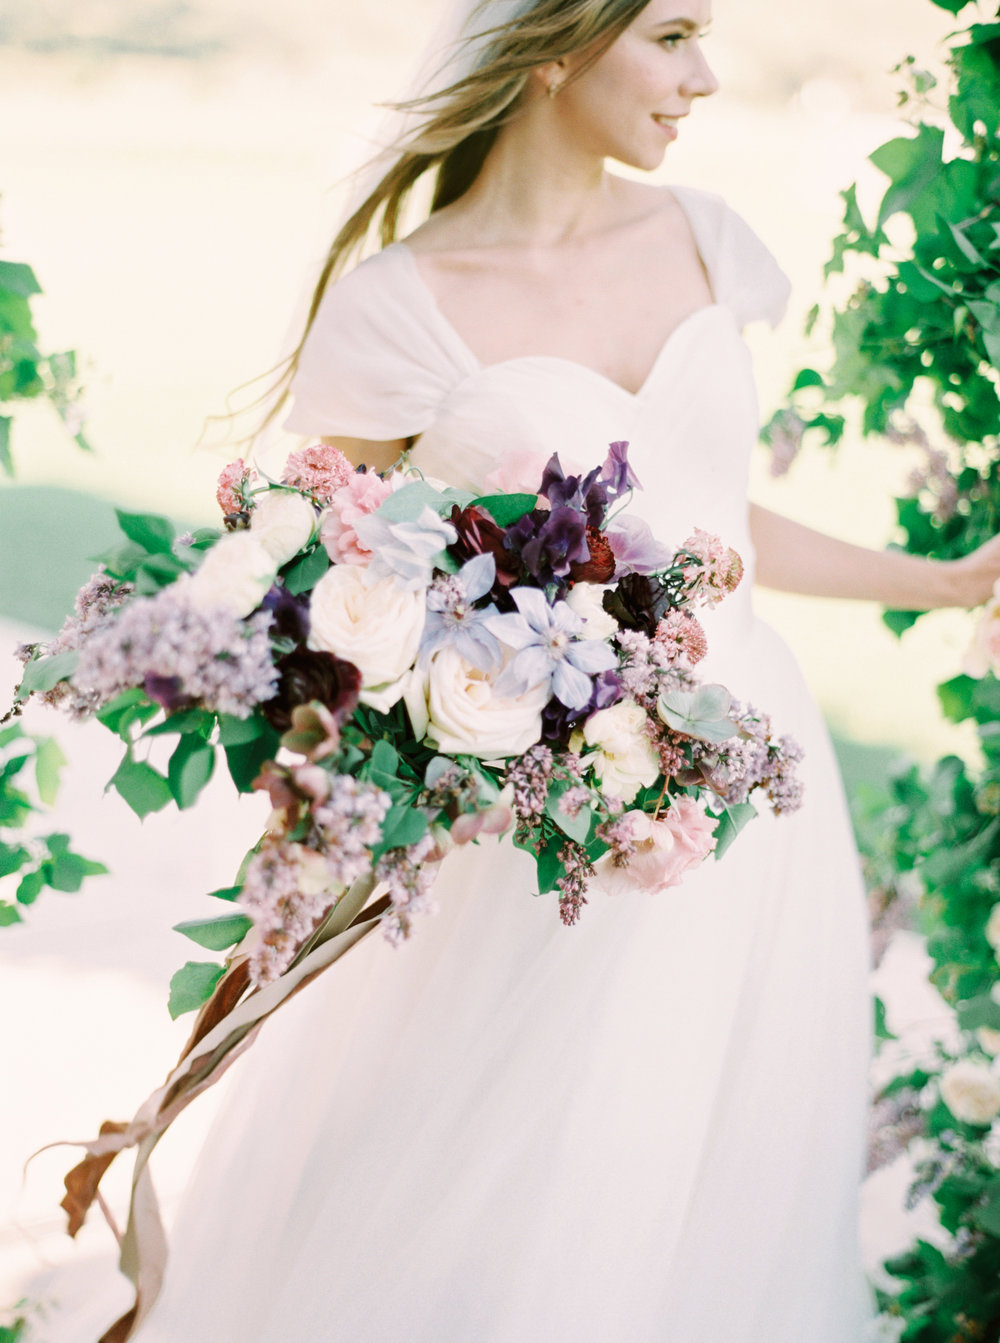 This-Love-of-Yours-Kirigin-Cellars-Flower-Arch-Styled-Shoot-109.jpg